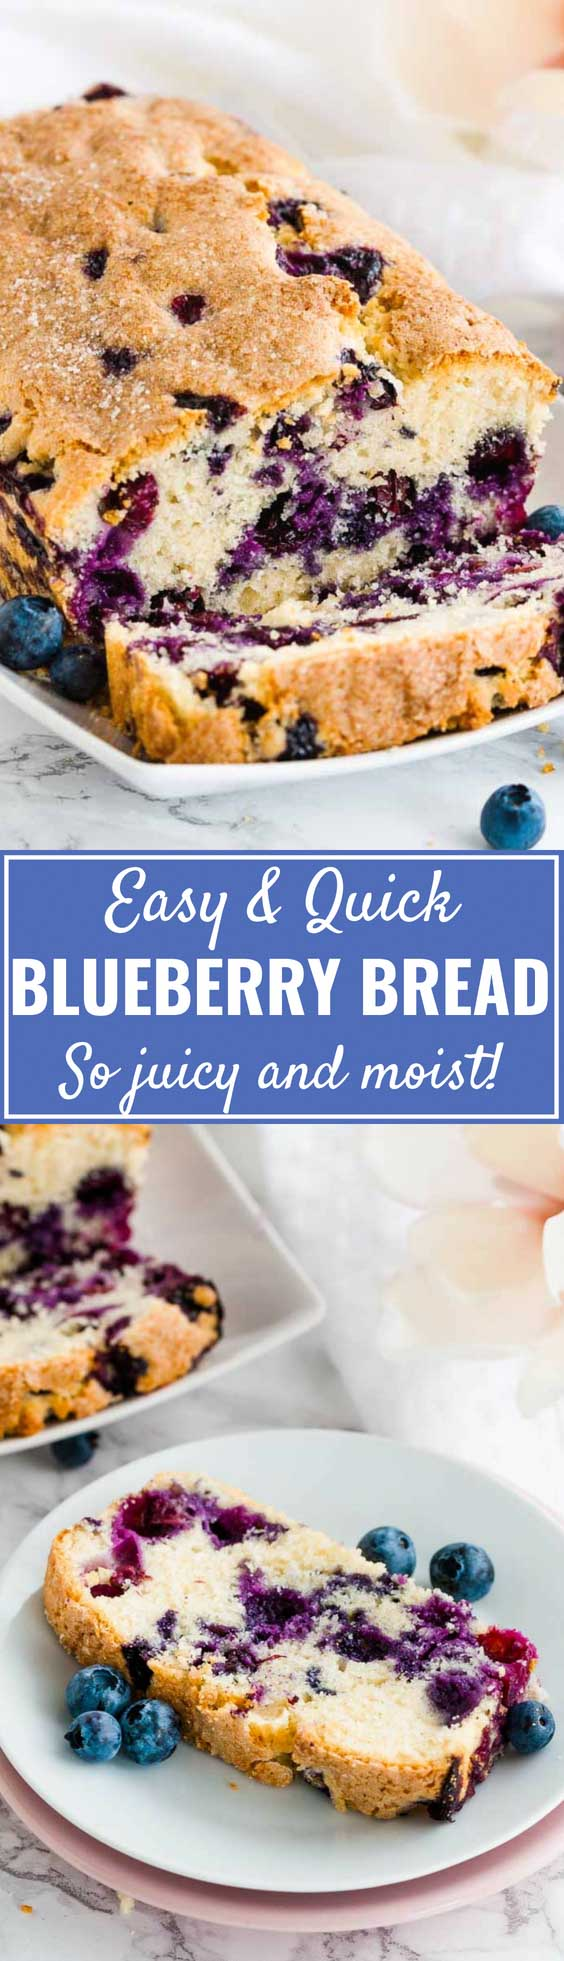 Blueberry Bread is super easy and quick to make from scratch! This moist quick bread is loaded with fresh blueberries and topped with a sprinkle of sugar for some crunch. A perfect quick breakfast for busy mornings that the whole family will love! #blueberrybread #blueberryquickbread #quickbread #blueberryrecipes #breakfastrecipes #blueberries